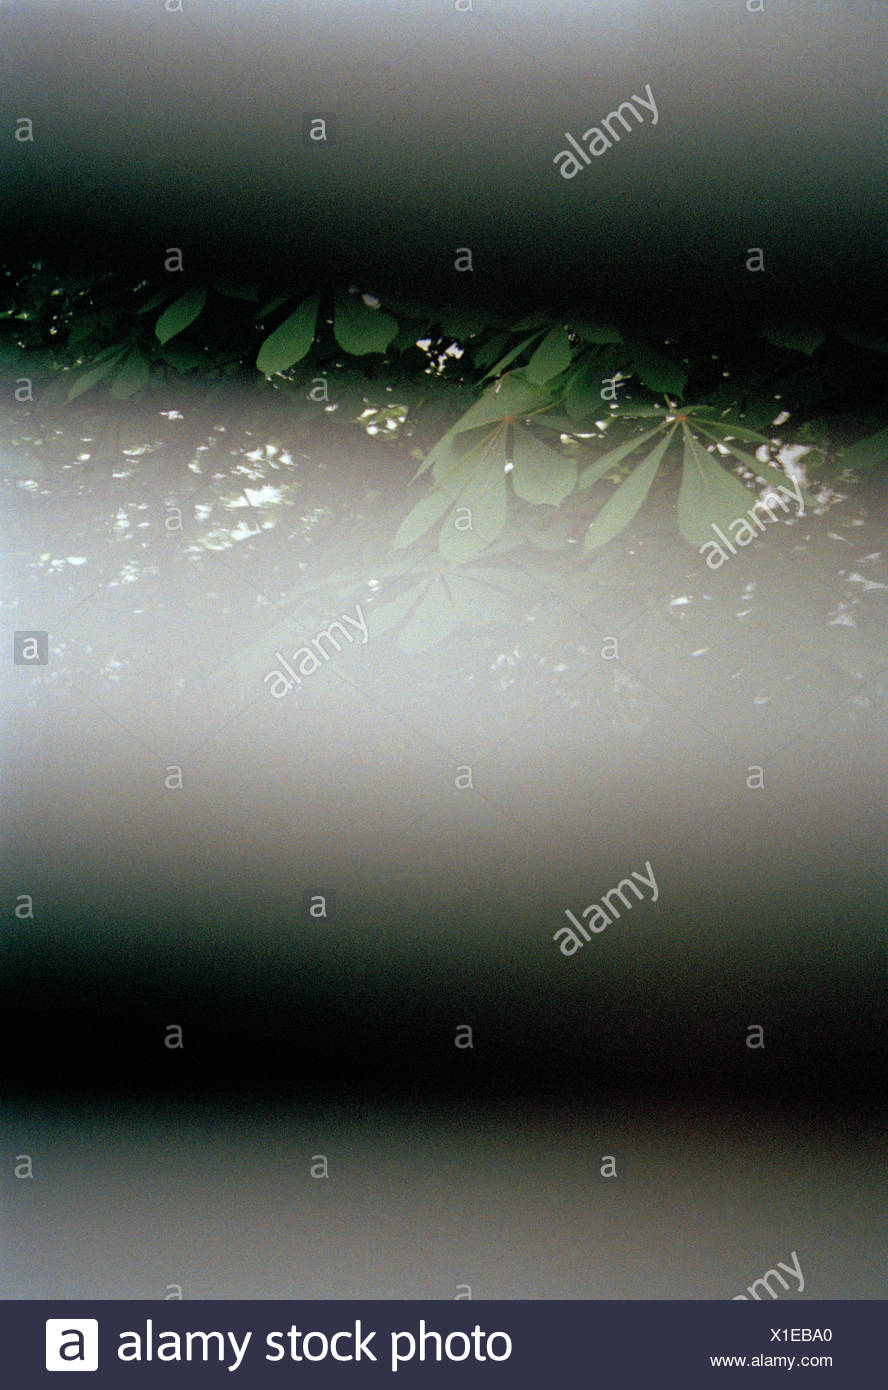 View through horizontal blinds of tree branches - Stock Image